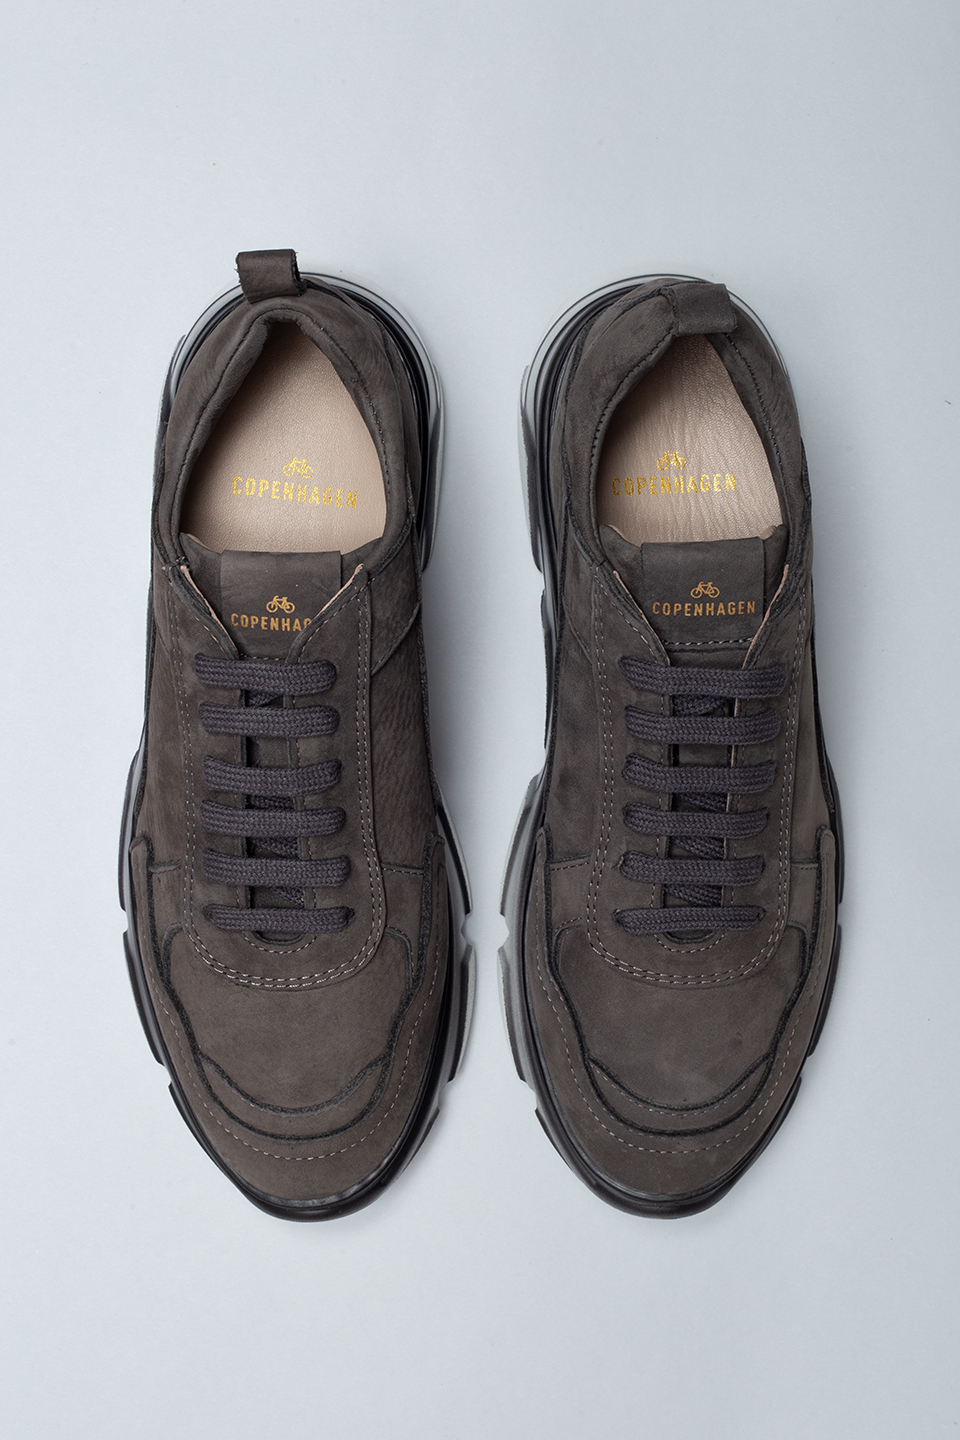 CPH40 nabuc dark grey - alternative 2